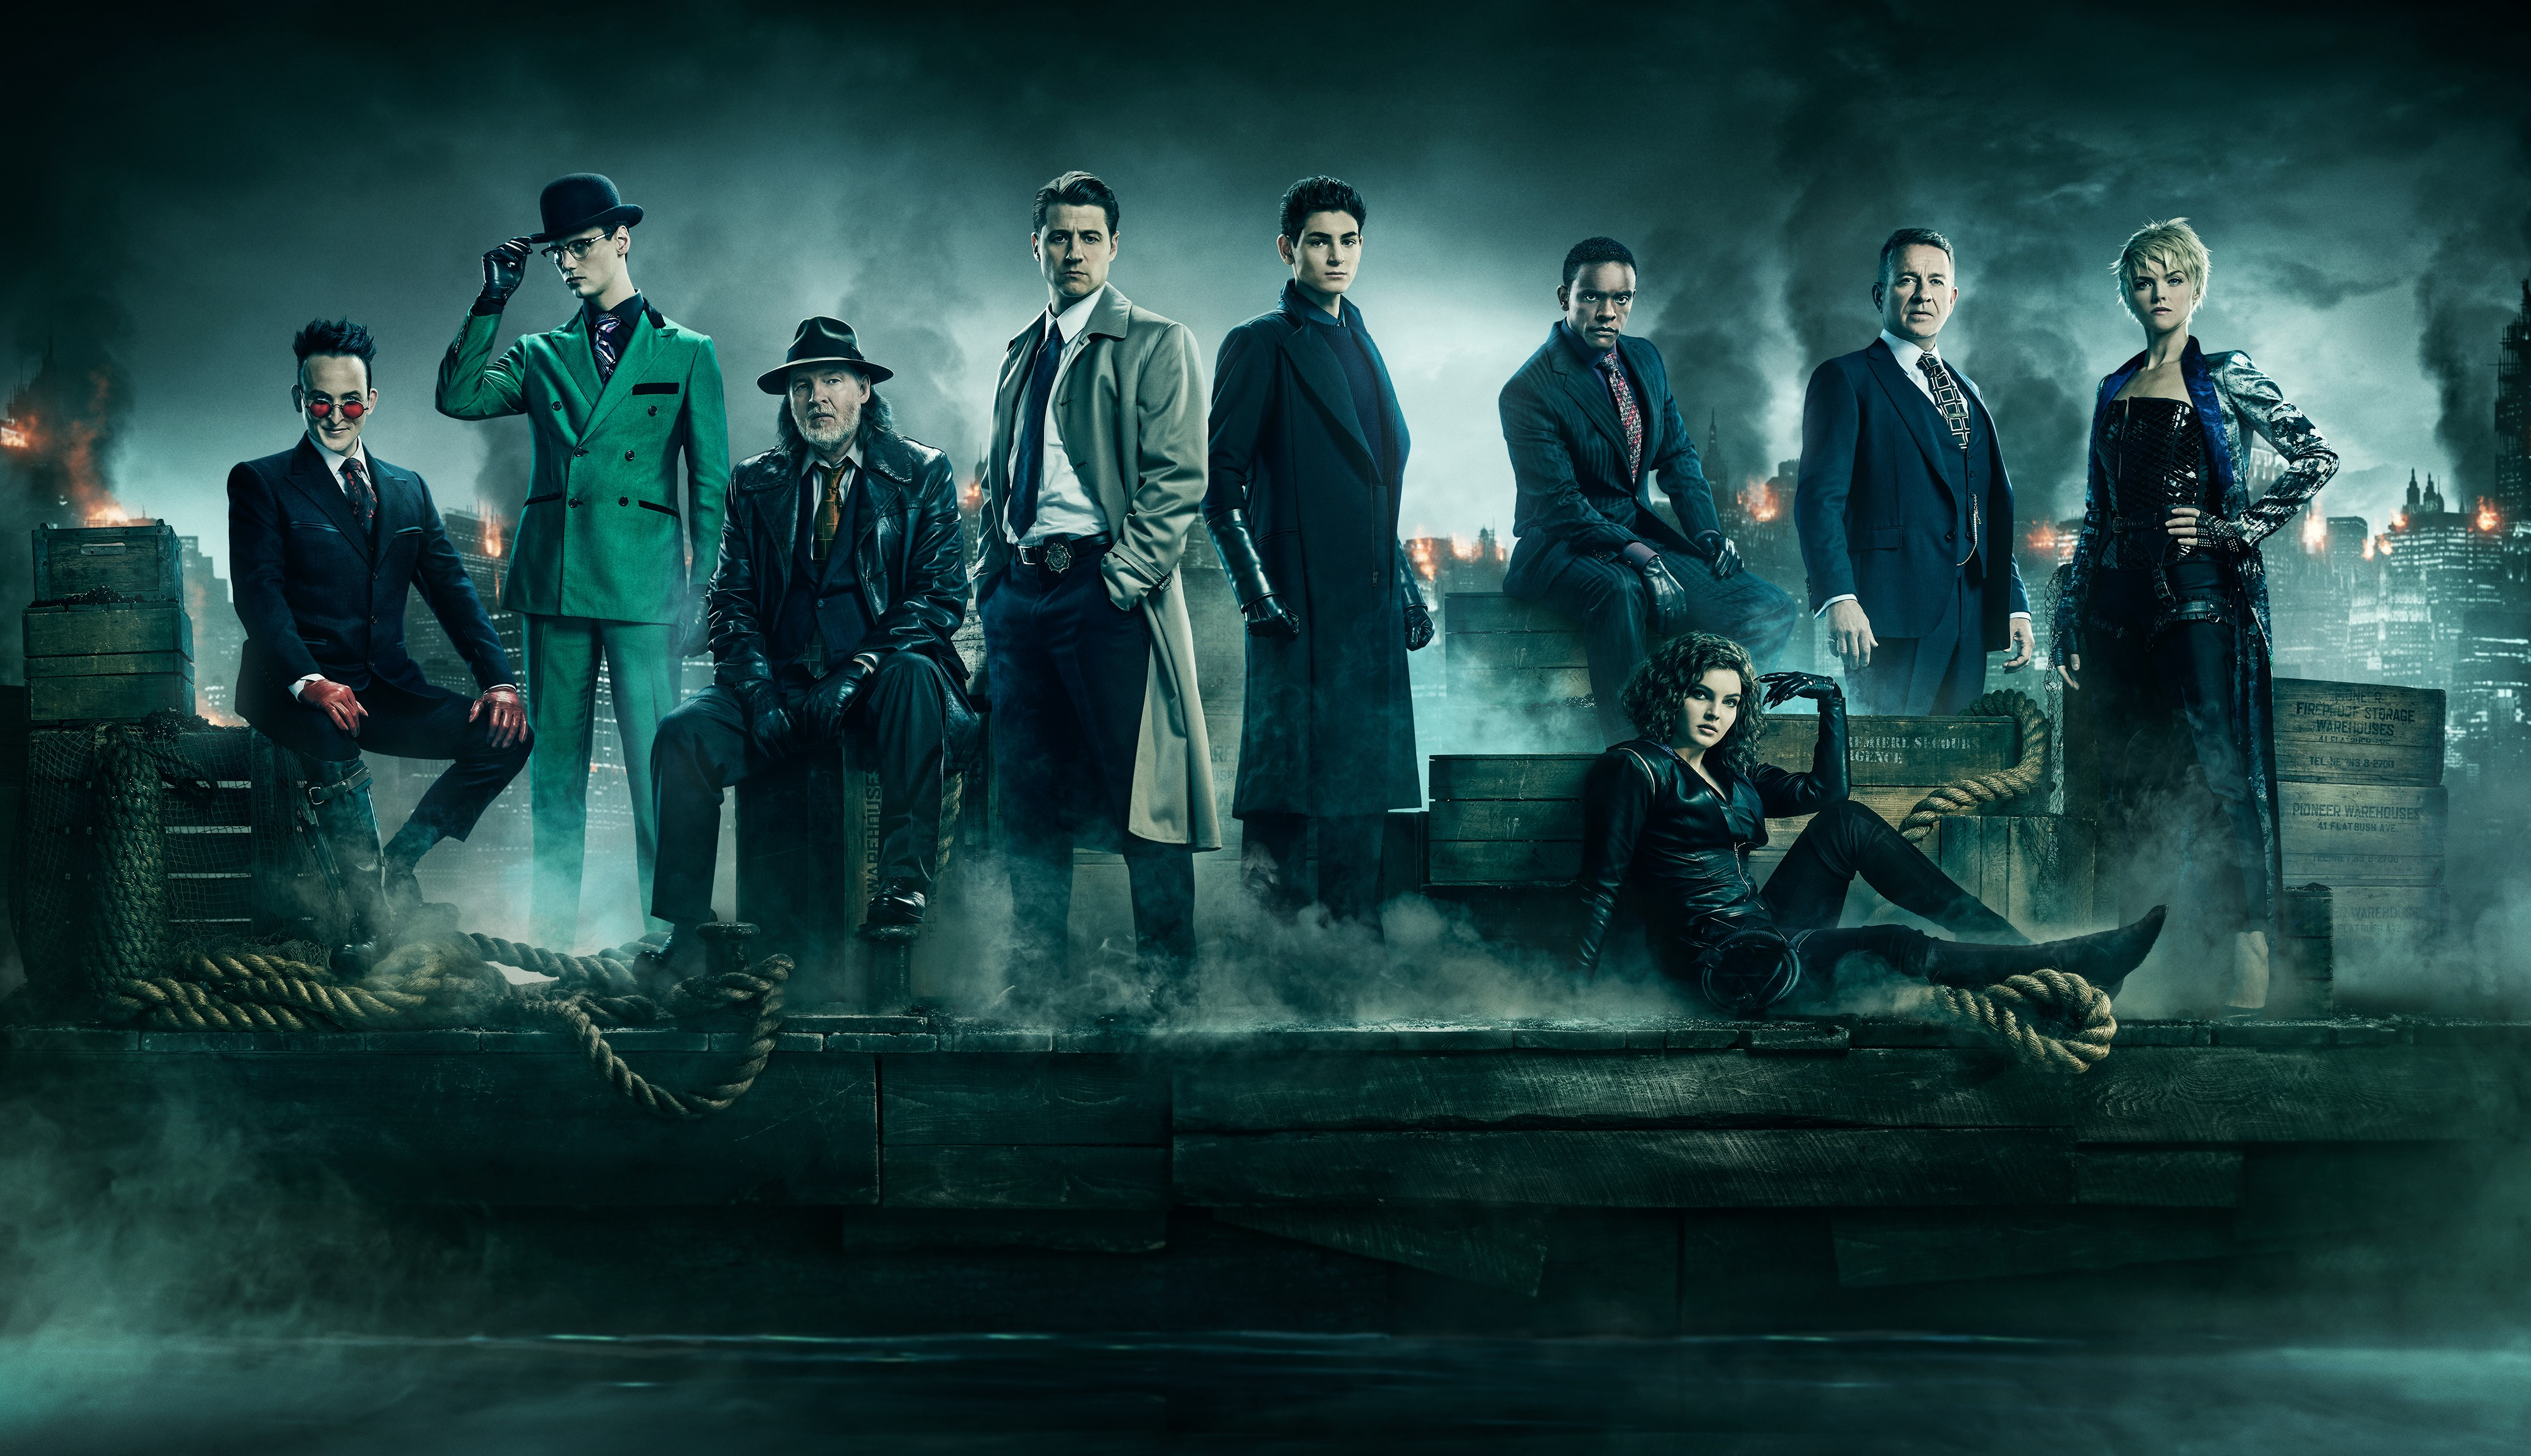 Gotham season 5 hd tv shows 4k wallpapers images - Tv series wallpaper 4k ...